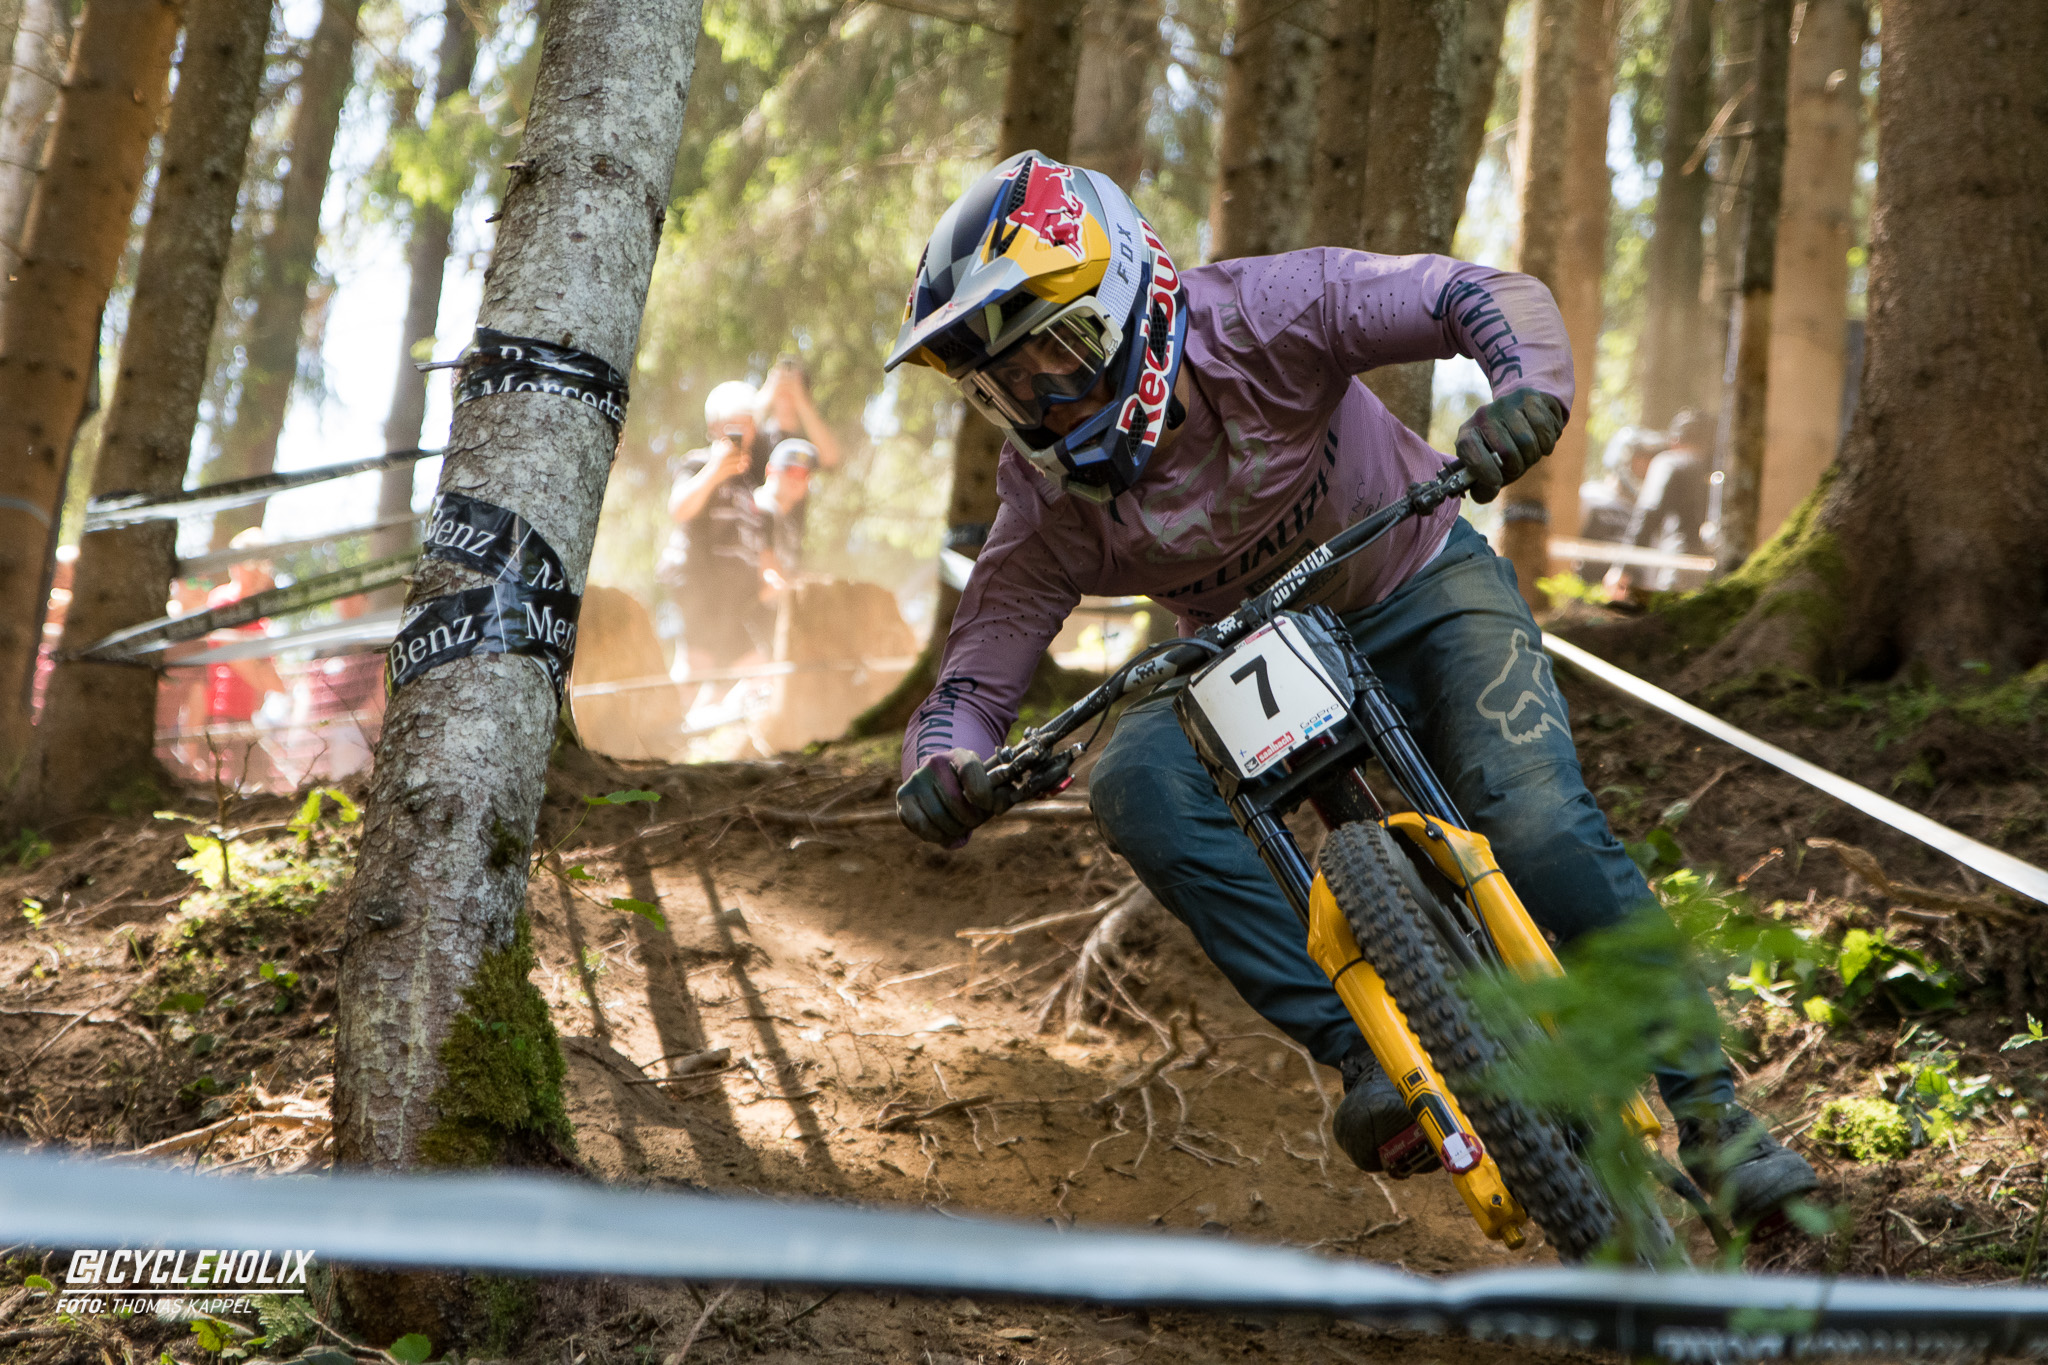 2019 Downhill Worldcup Leogang Finale Action 23 Cycleholix